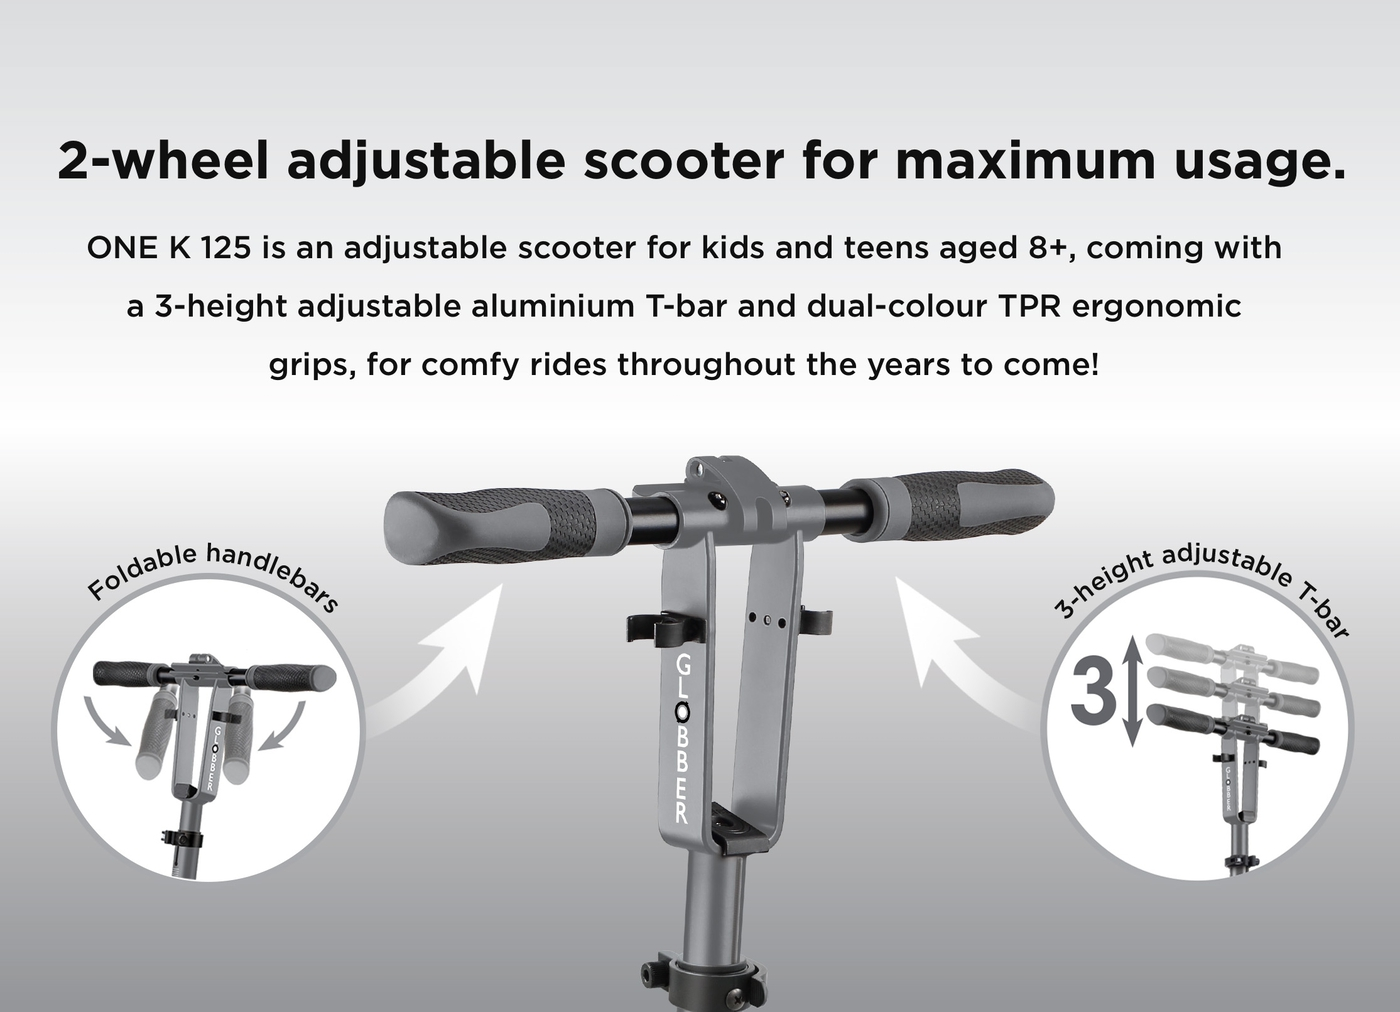 2-wheel adjustable scooter for maximum usage. ONE K 125 is an adjustable scooter for kids and teens aged 8+, coming with a 3-height adjustable aluminium T-bar and dual-colour TPR ergonomic grips, for comfy rides throughout the years to come!